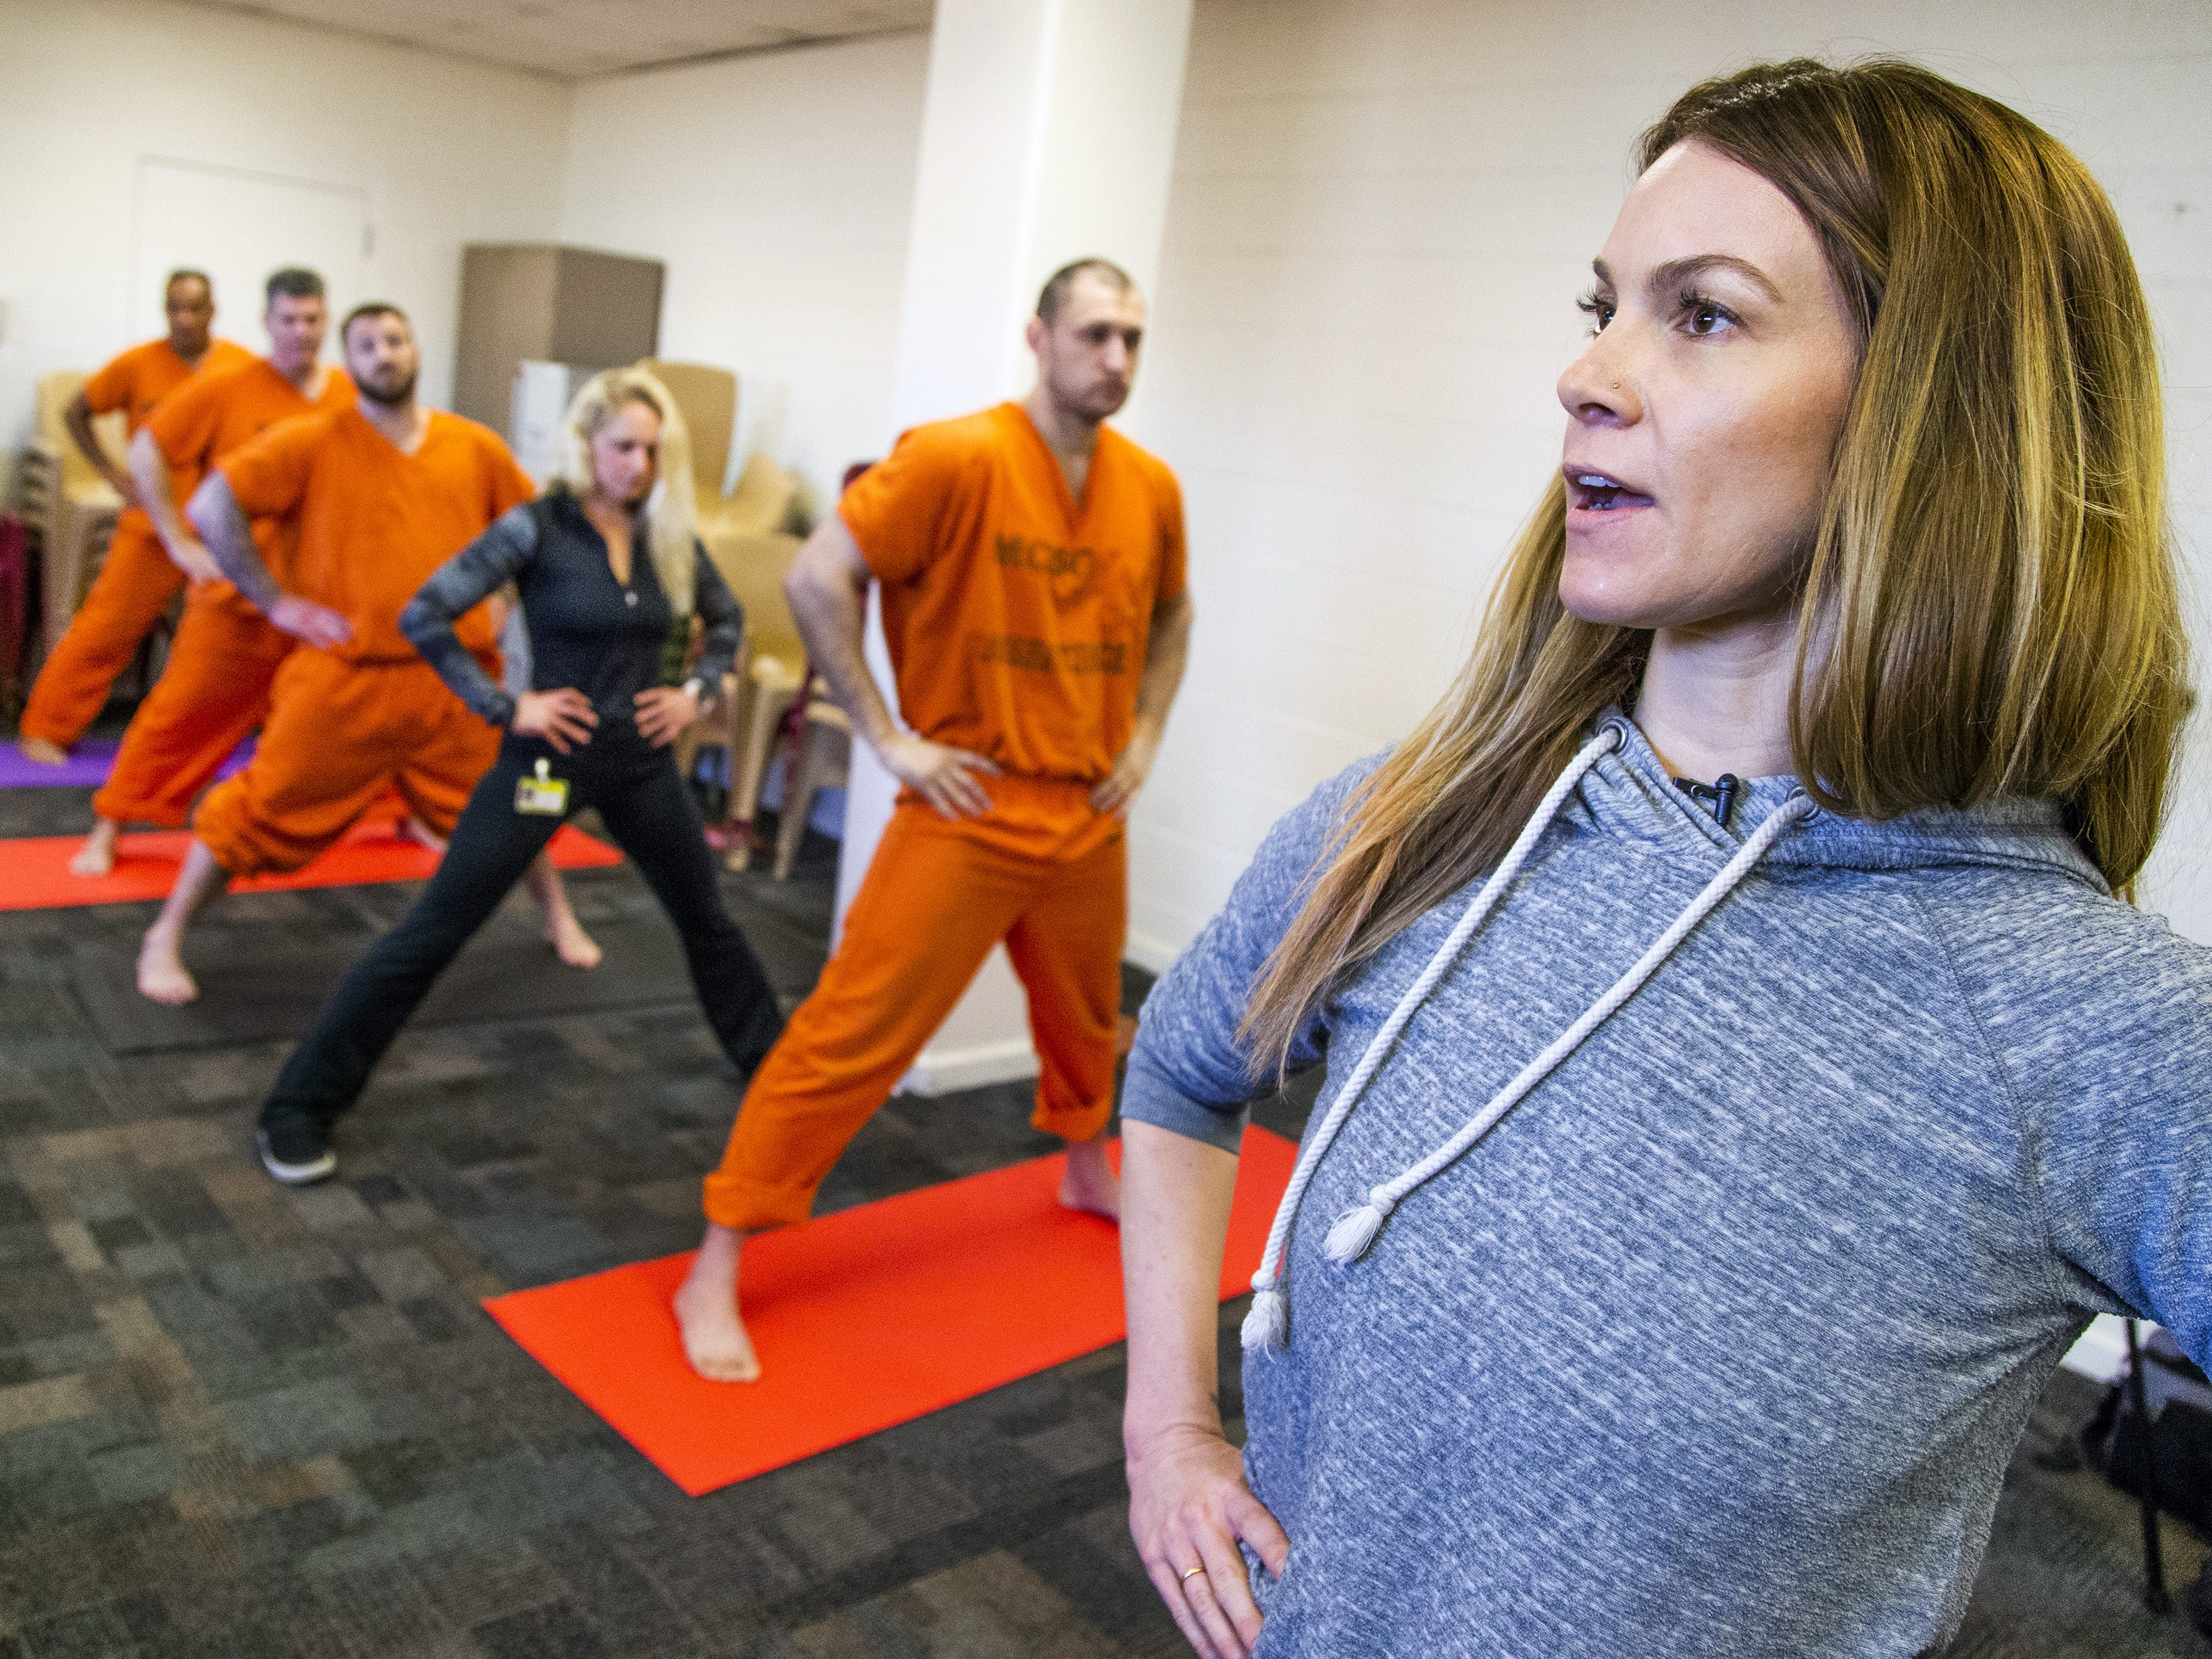 Volunteer Laura Walton helps run a yoga class offered by the Prison Yoga Project Phoenix at the Maricopa County Towers Jail complex on Jan. 11, 2019.